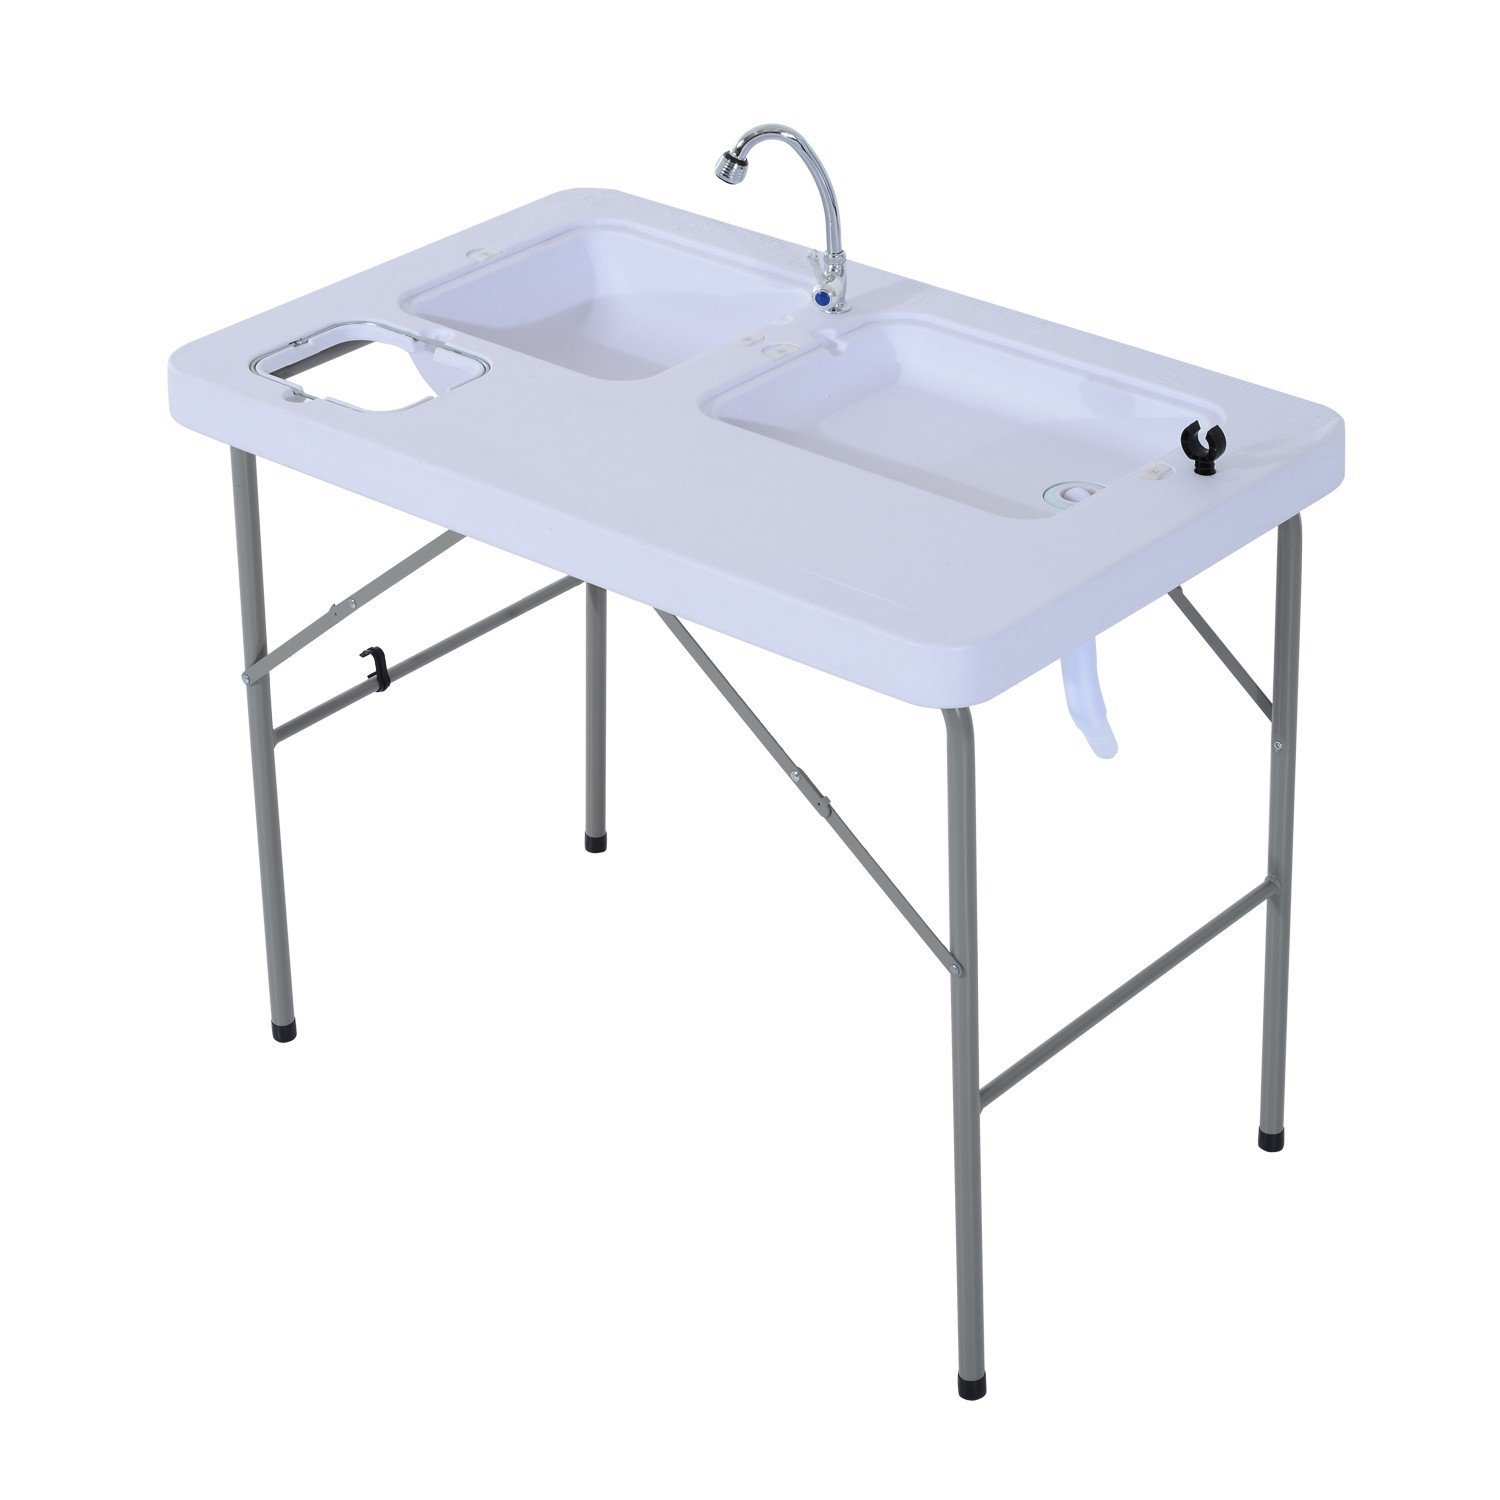 Portable Camping Picnic Sink Faucet Table Foldable Easy Transport With Ebook